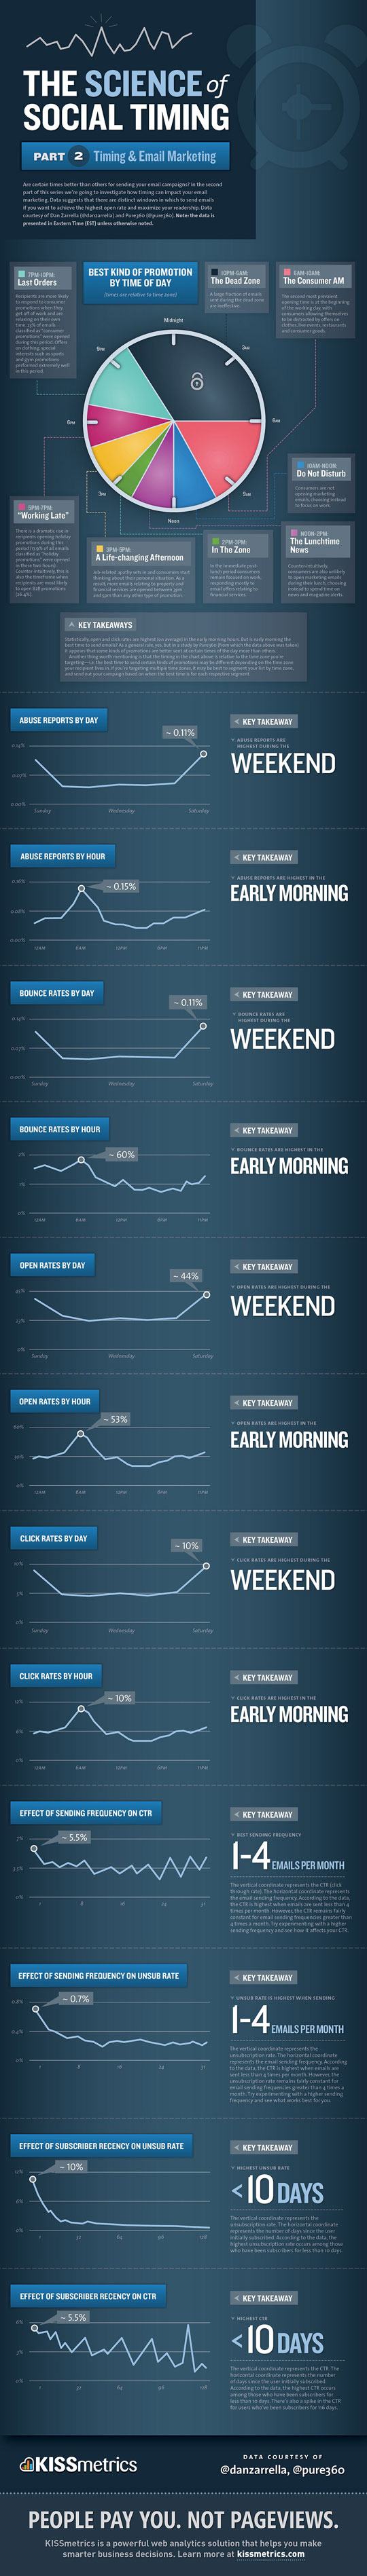 Email Marketing Timing - Click the image for bigger view